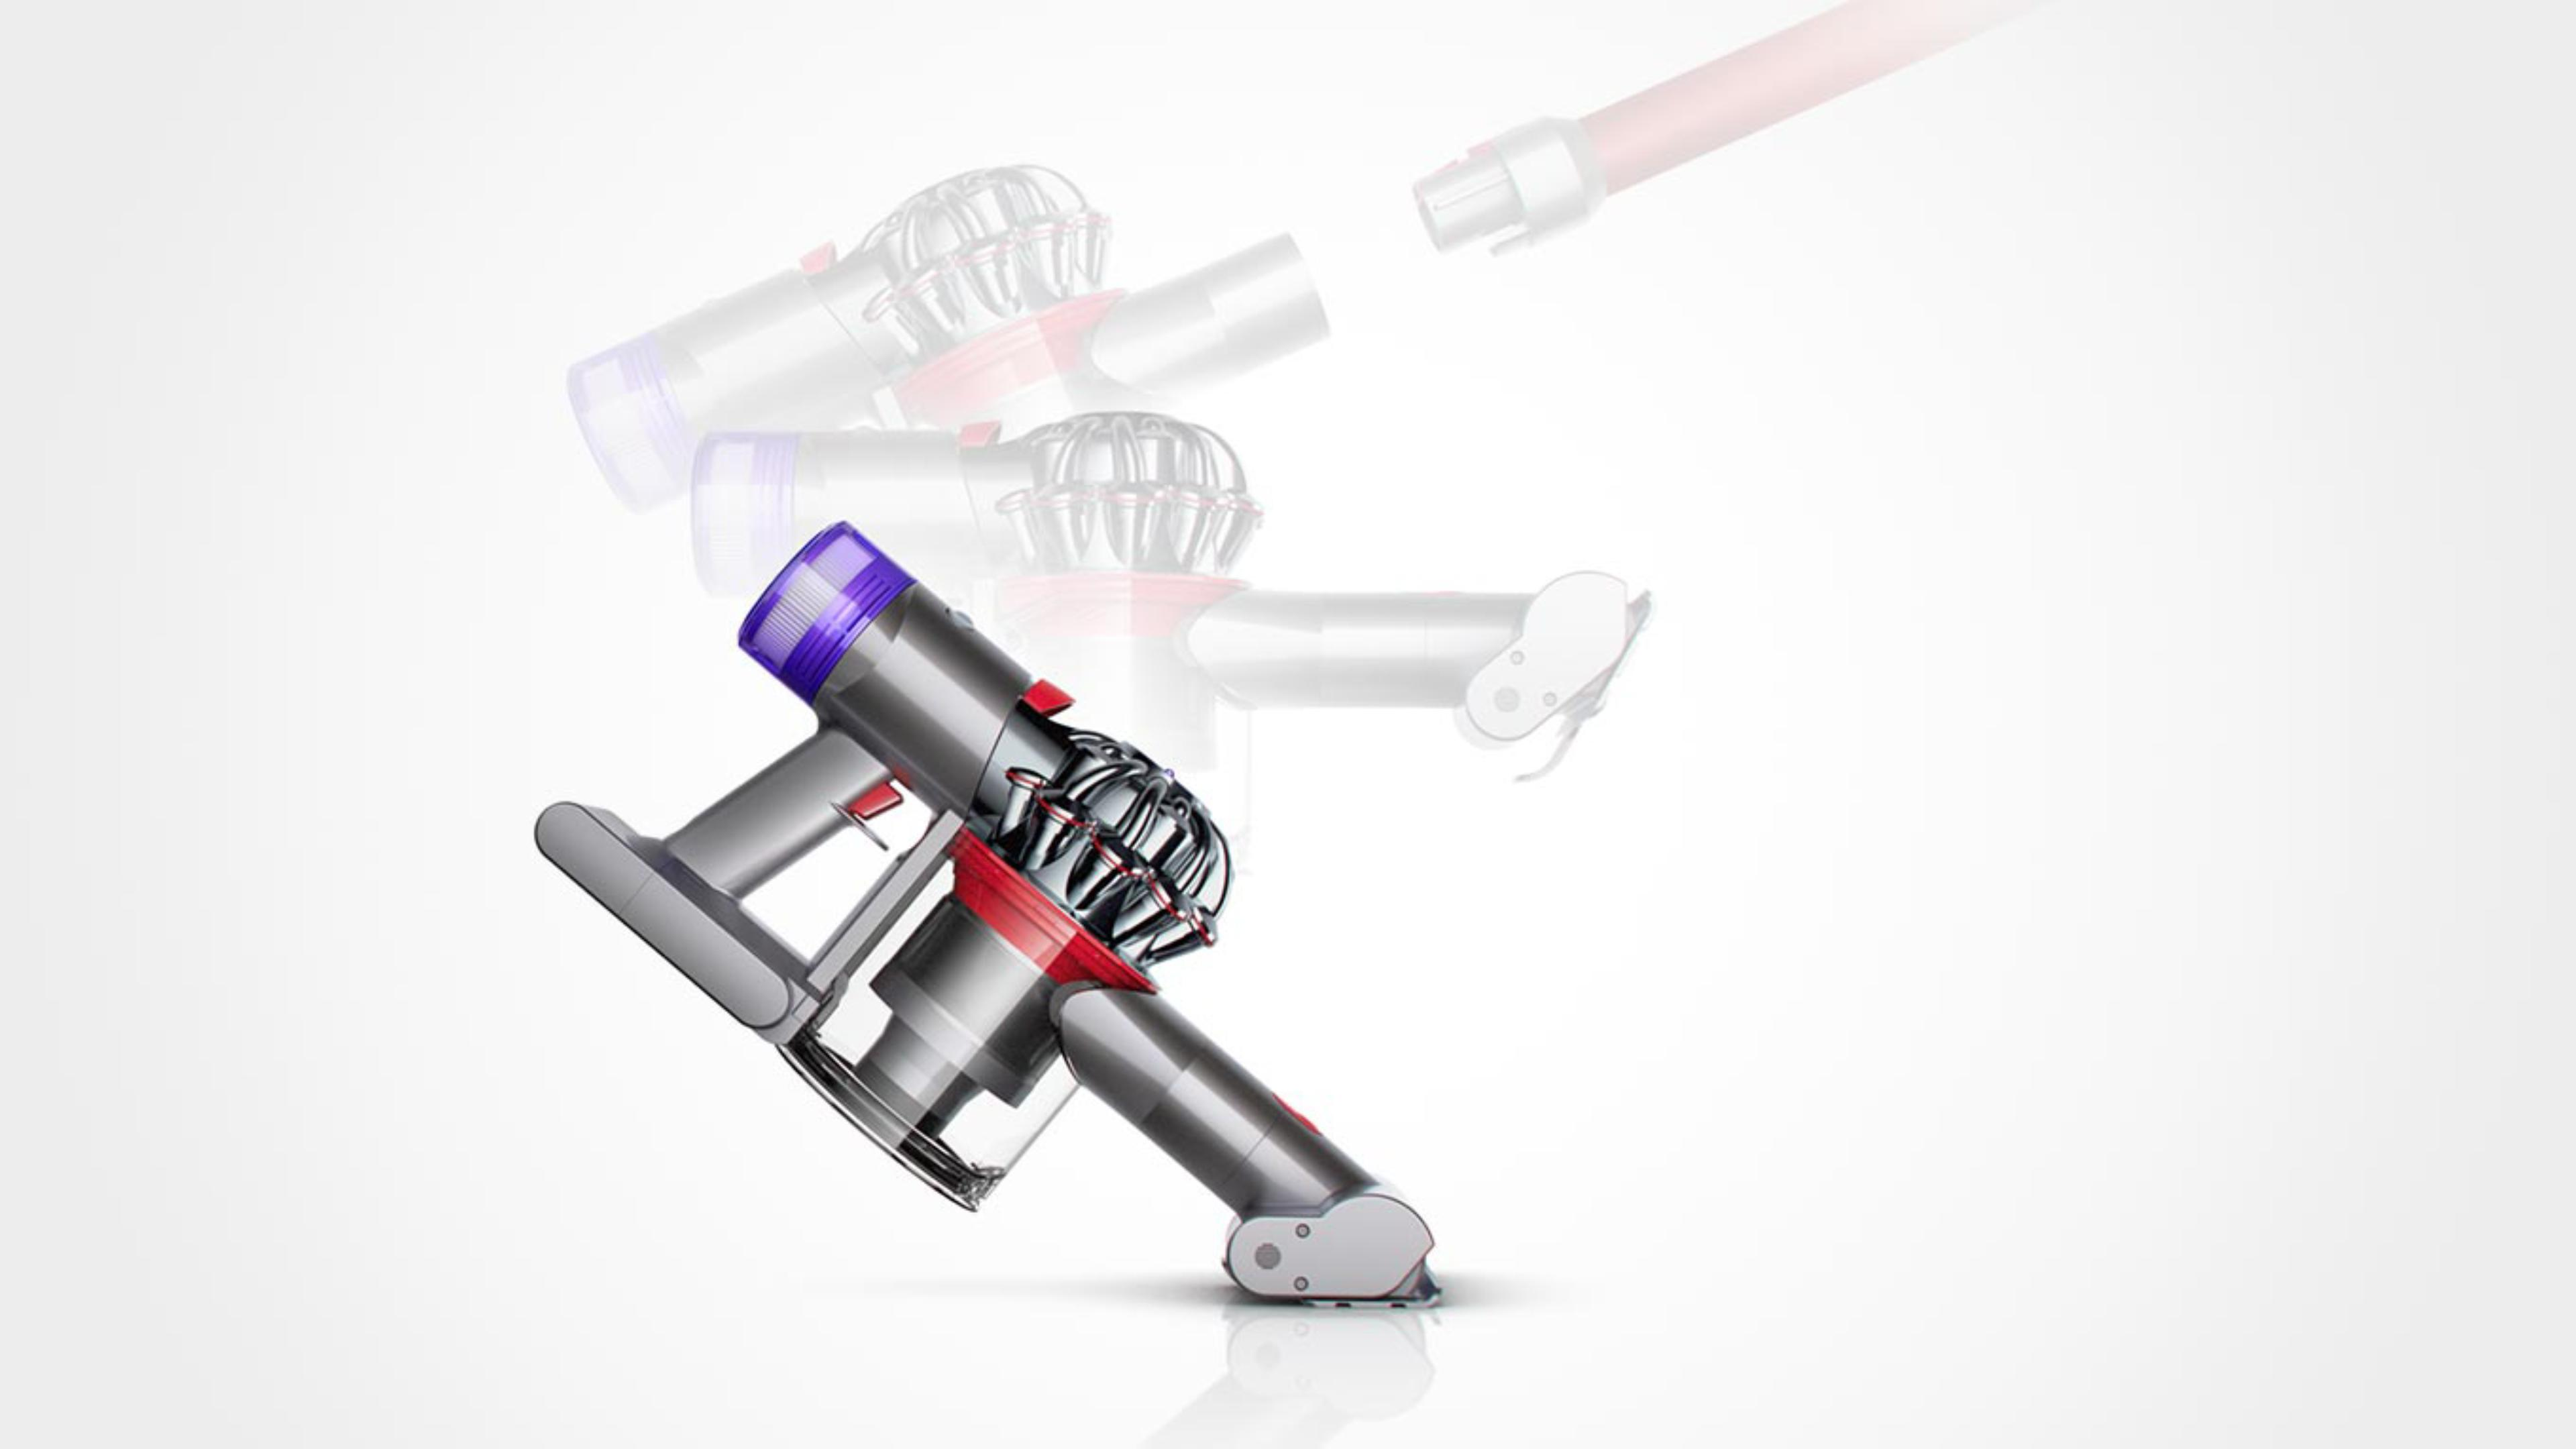 The Dyson V8™ vacuum used as a handheld